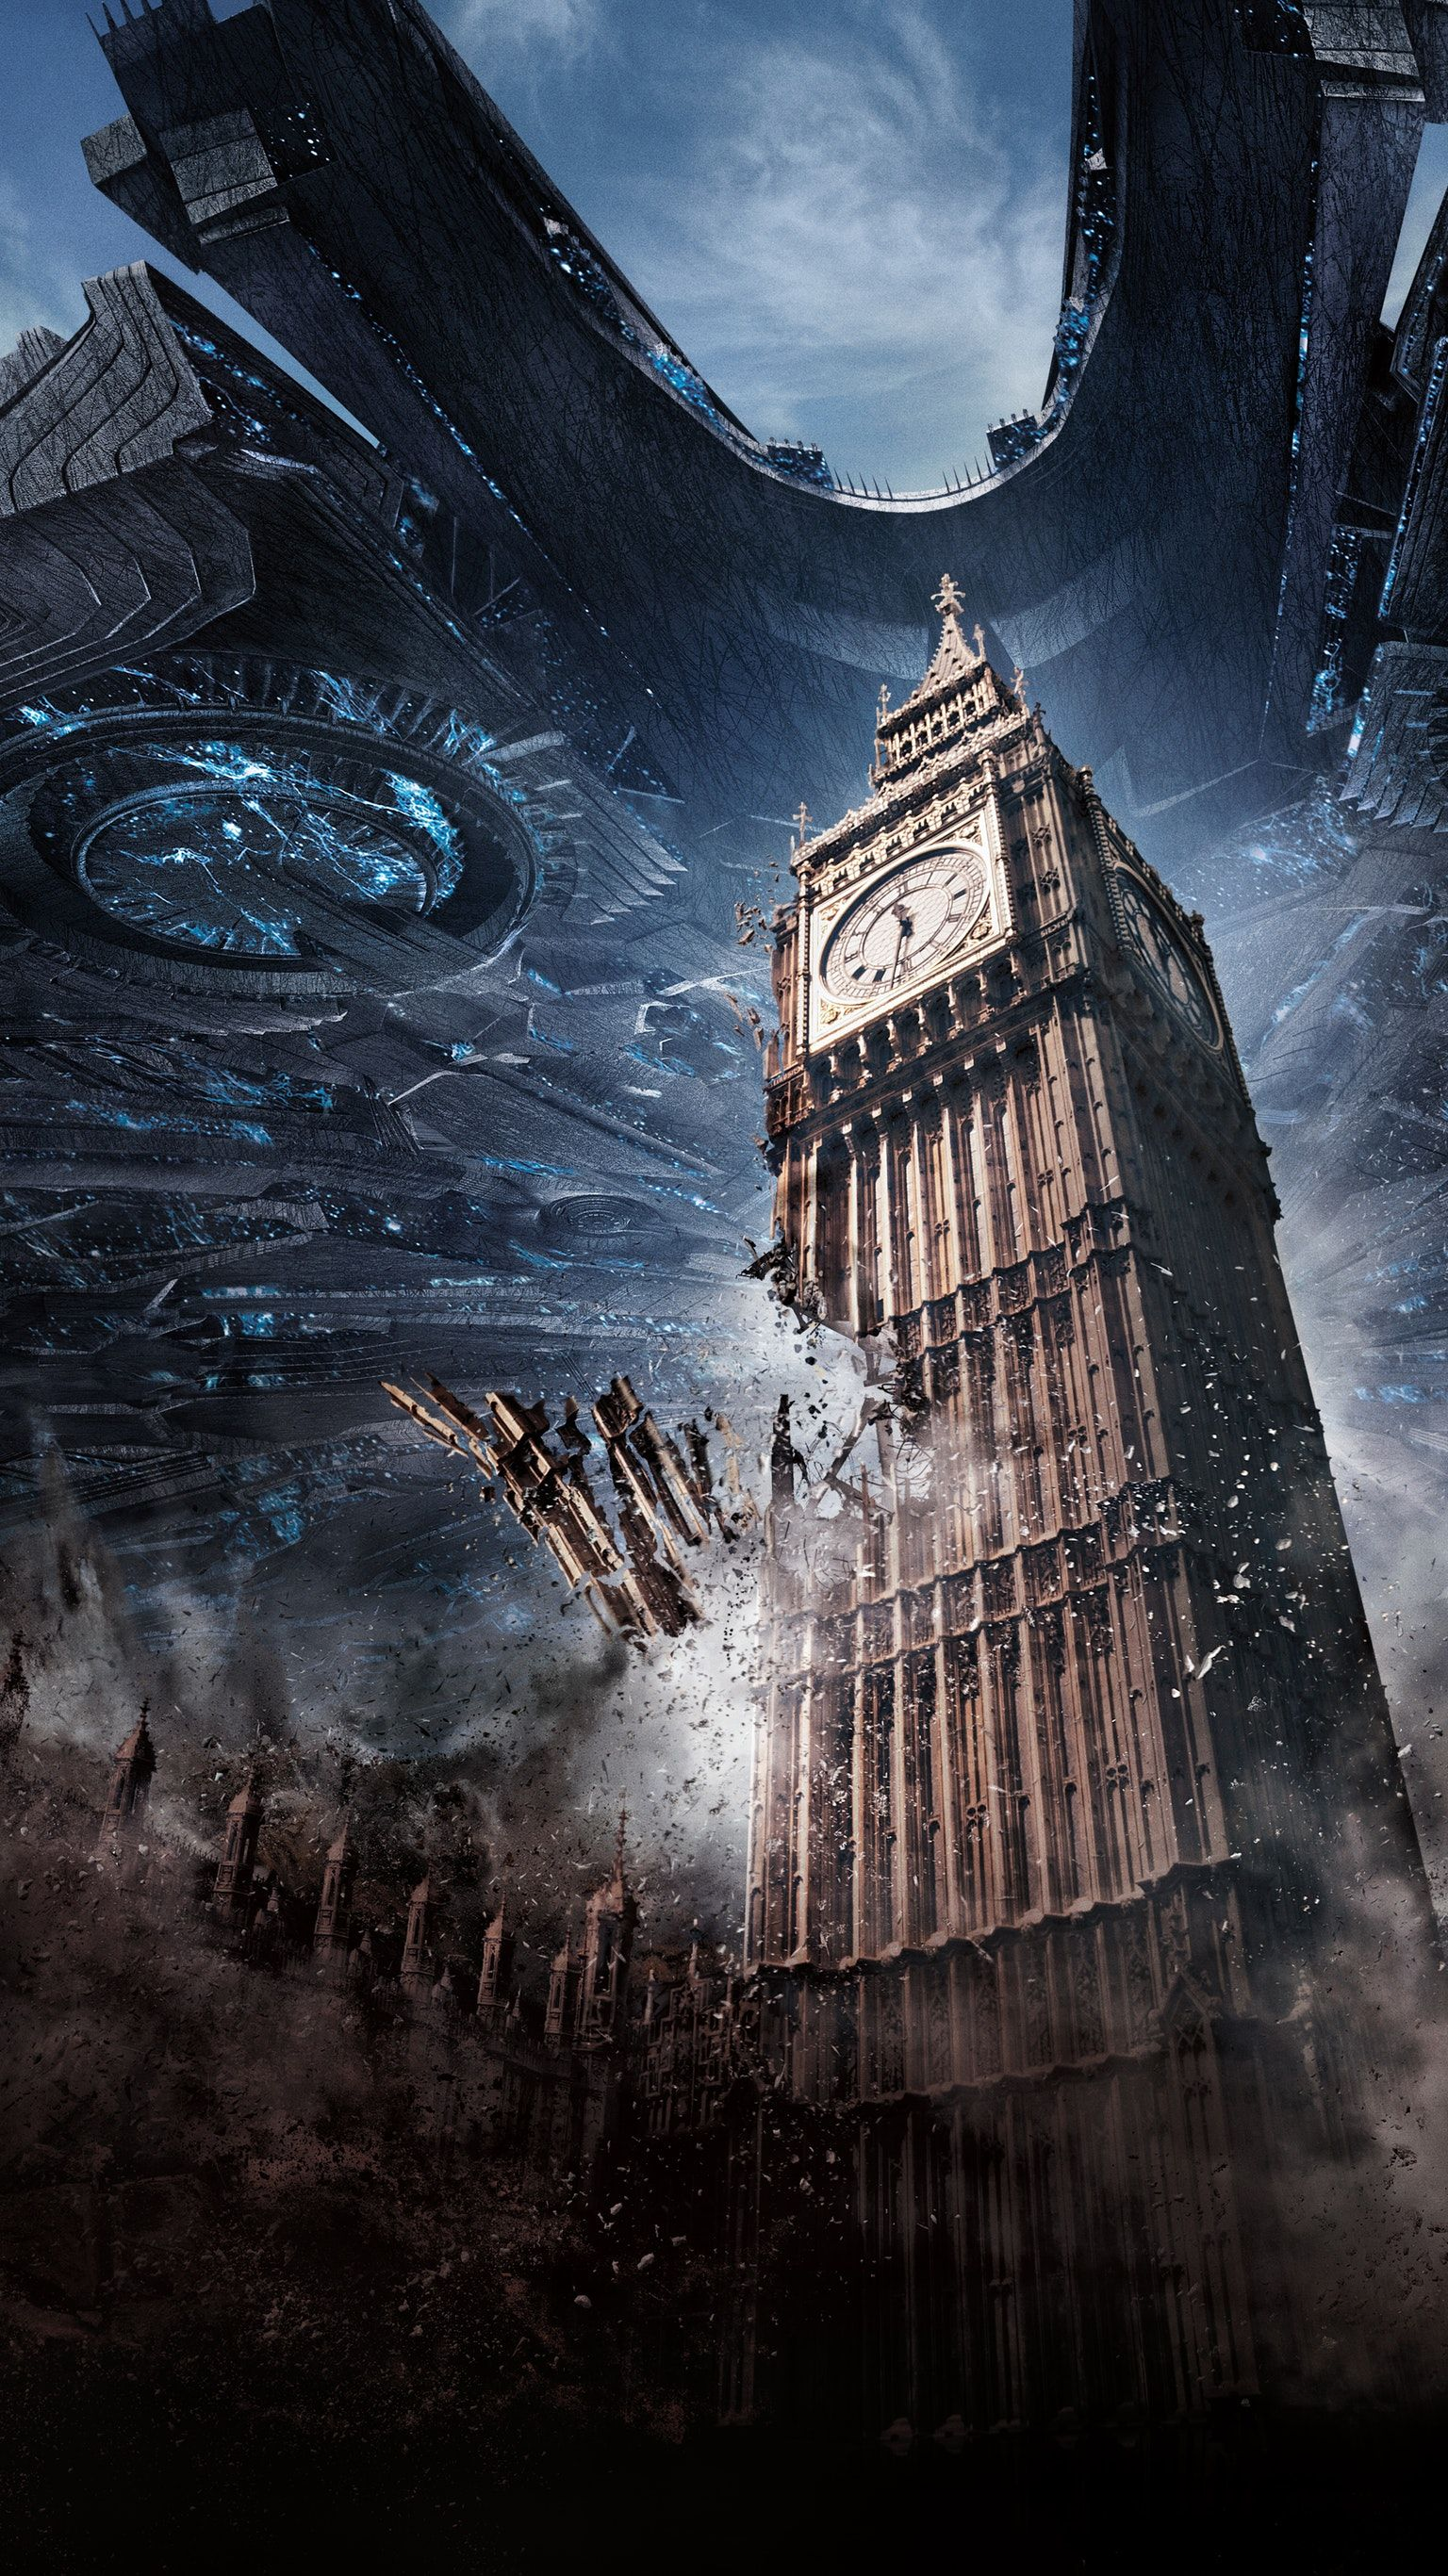 Wonderful Wallpaper Movie Independence Day - be47ed1e555c6f657721d1eb396cdfbd  Trends_732111.jpg